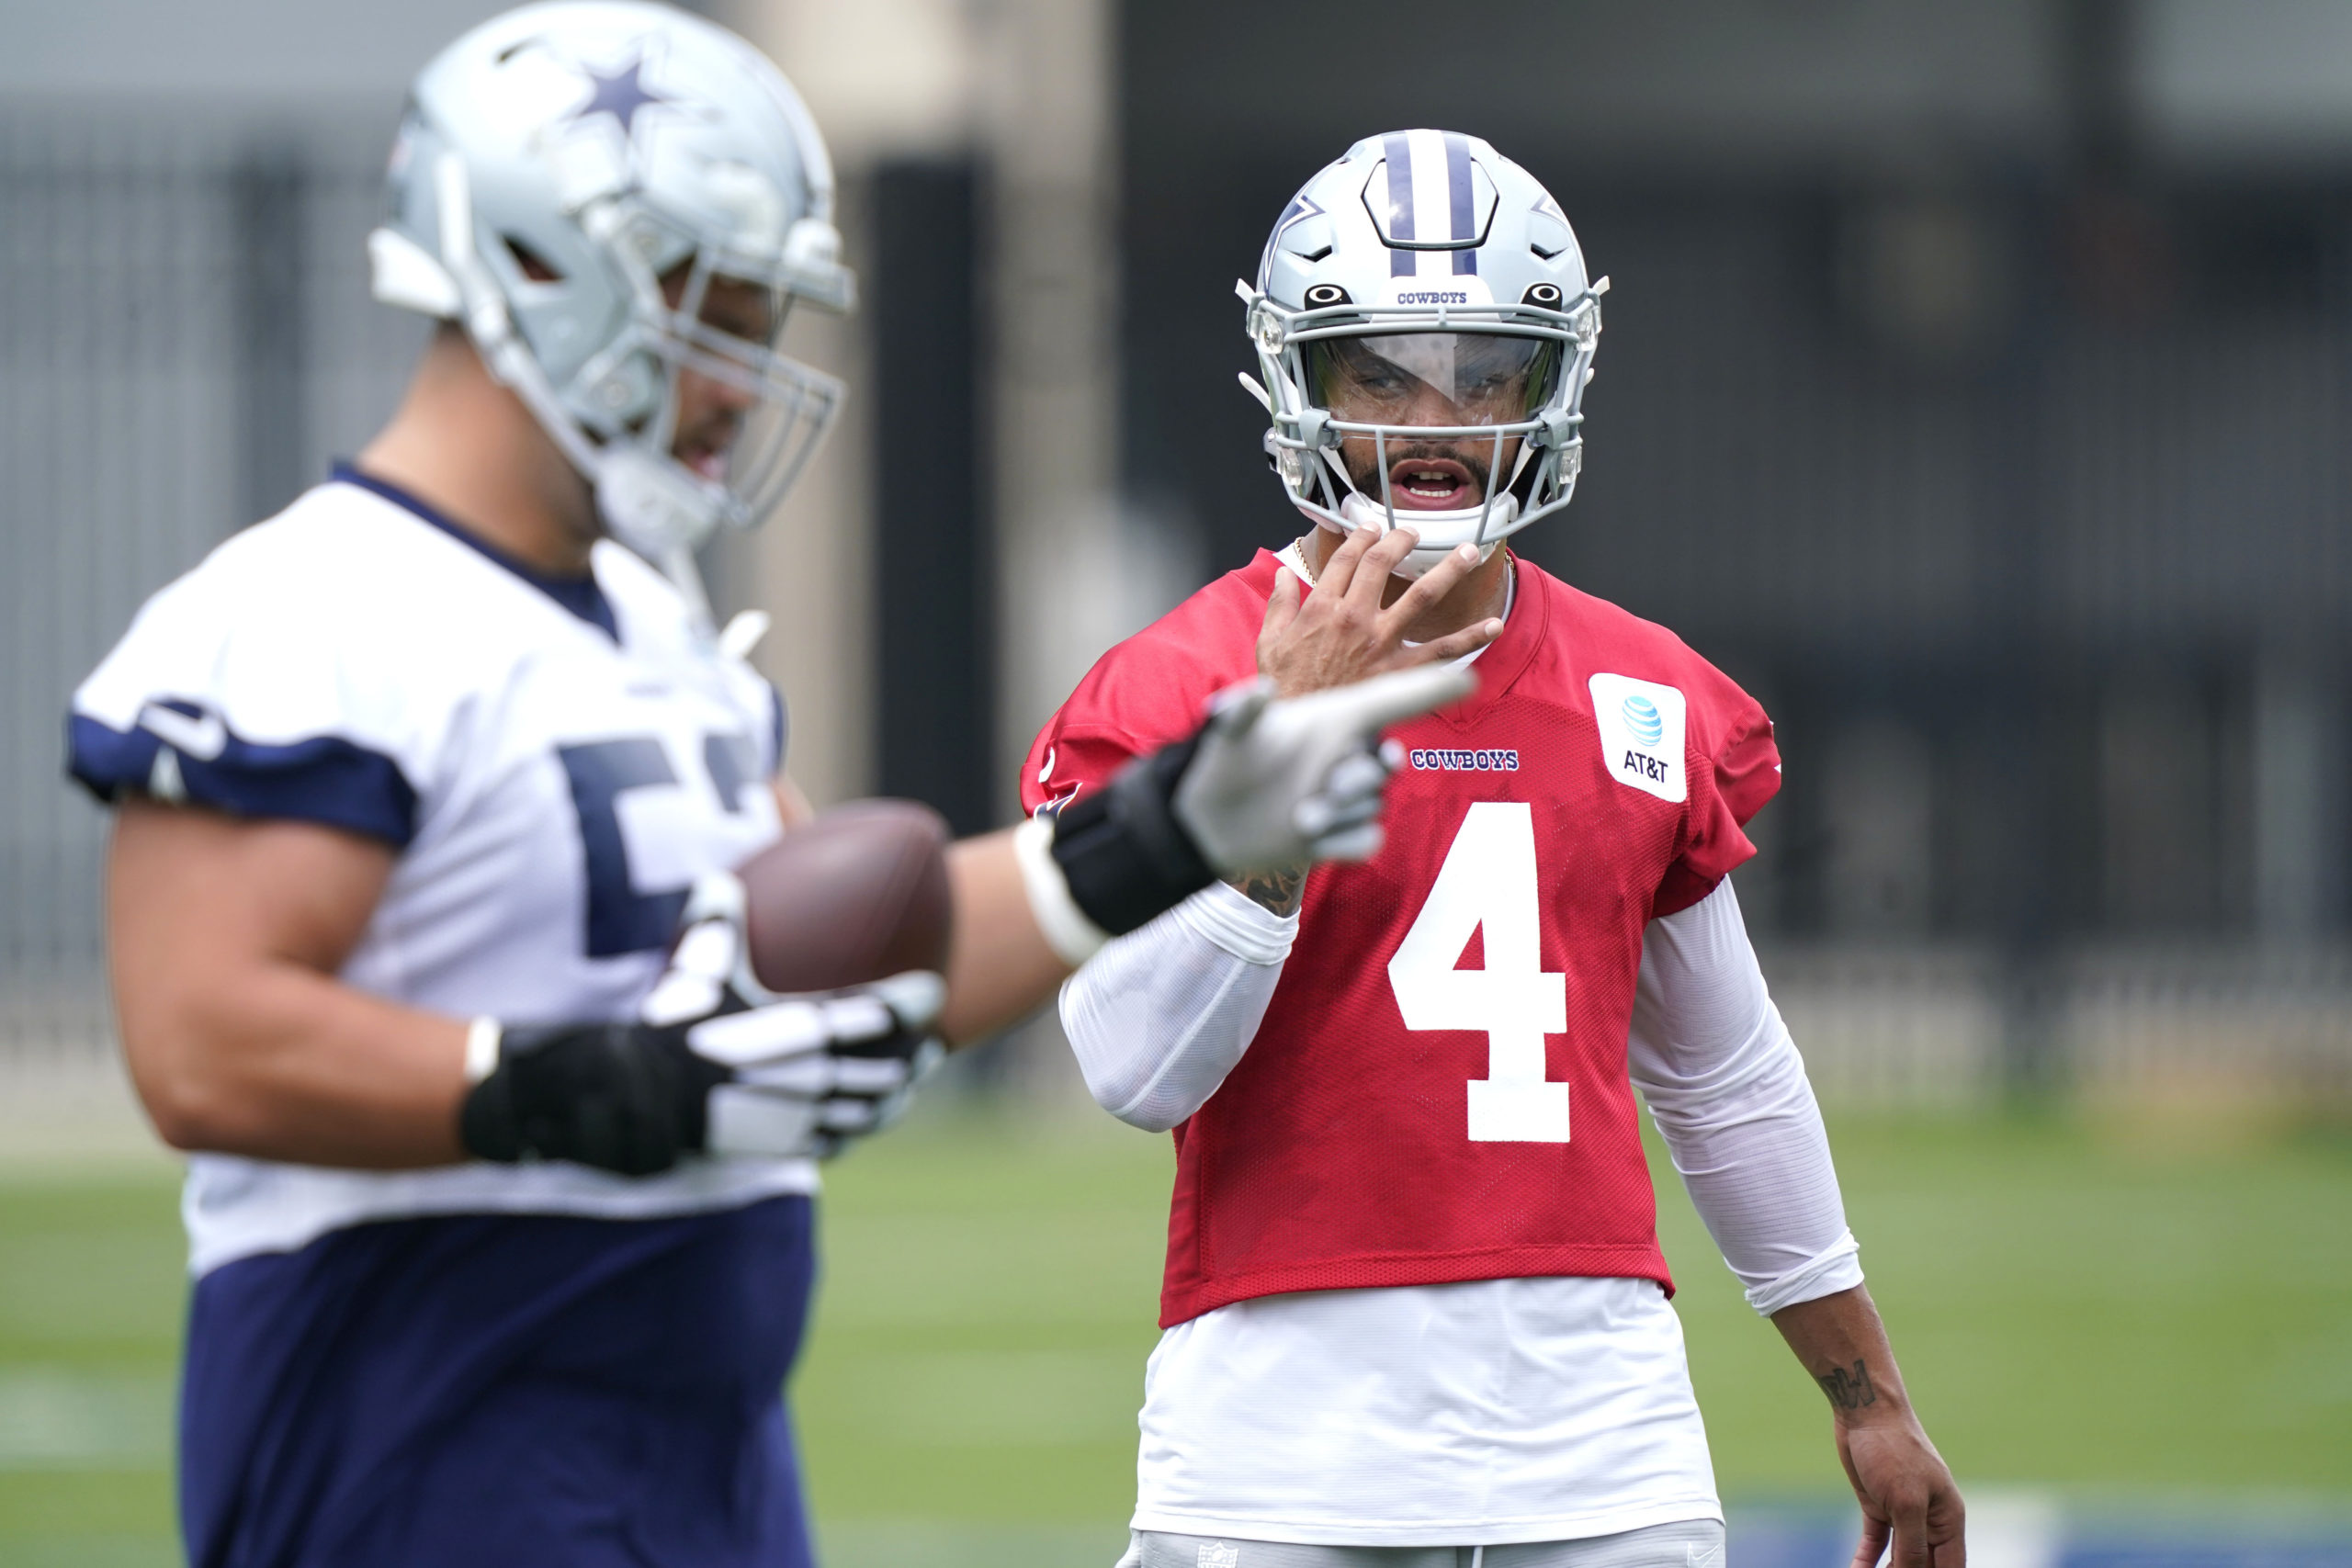 cowboys-dak-prescott-says-2021-season-is-going-to-be-very-very-particular-for-us.jpg